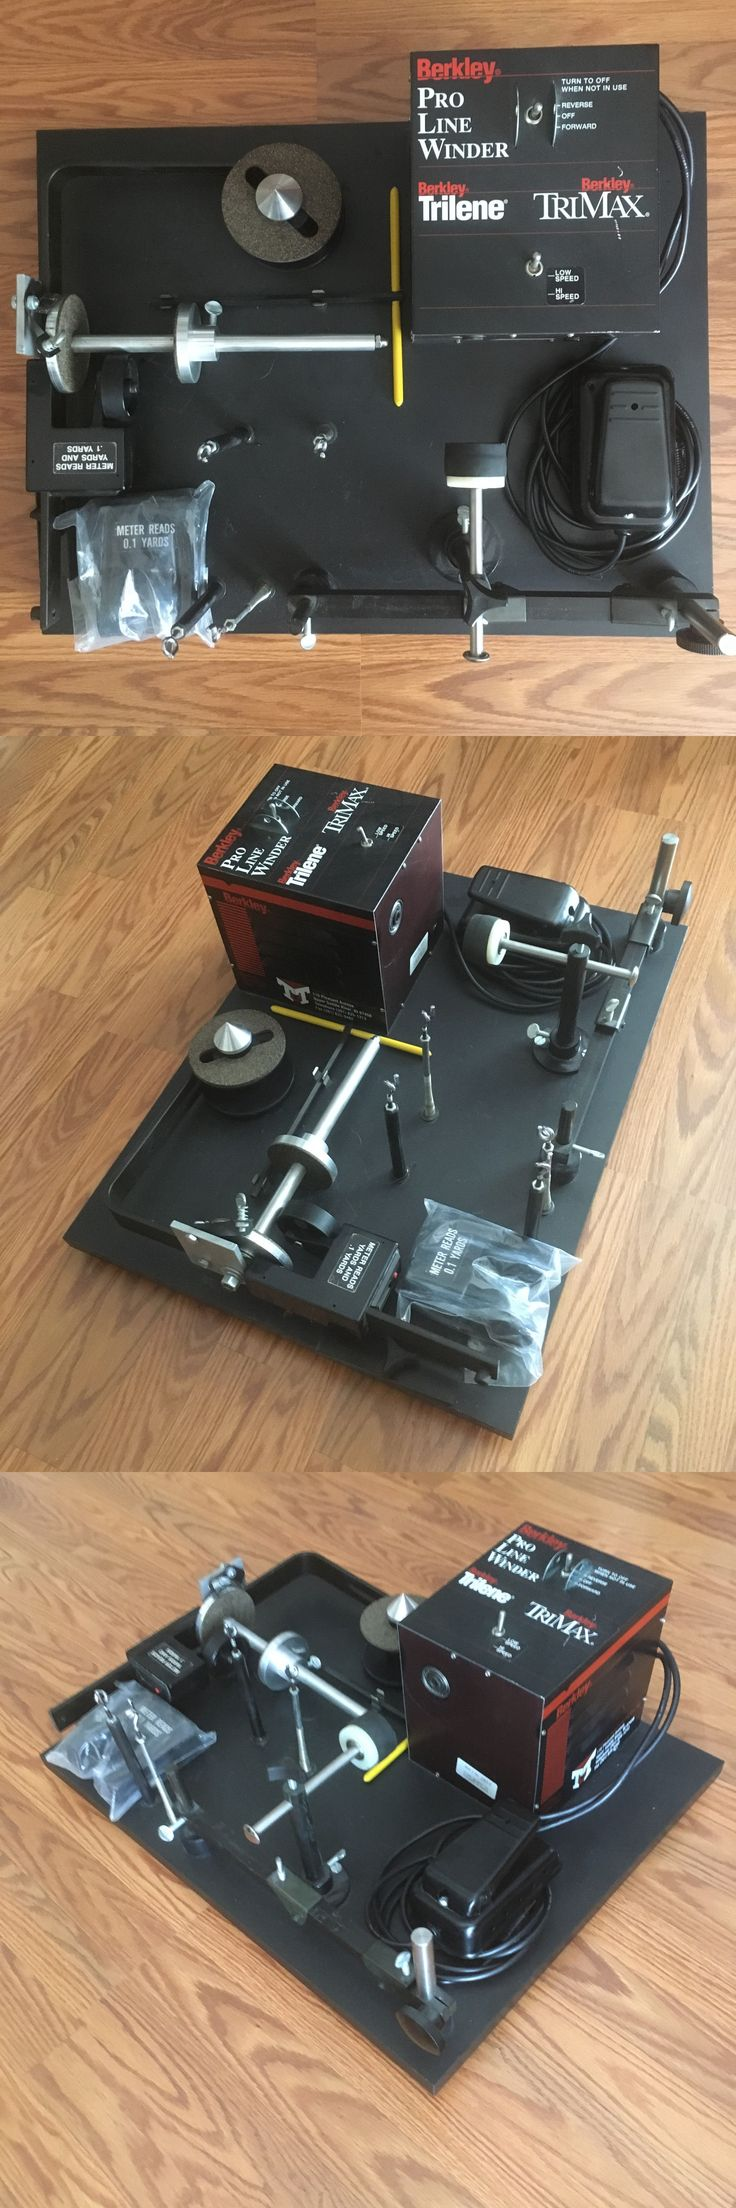 Berkley line winders - Line Tools And Accessories 179971 Berkley Trilene Pro Line Winder Made By Triangle Manufacturing Buy It Now Only 500 On Ebay Pinterest